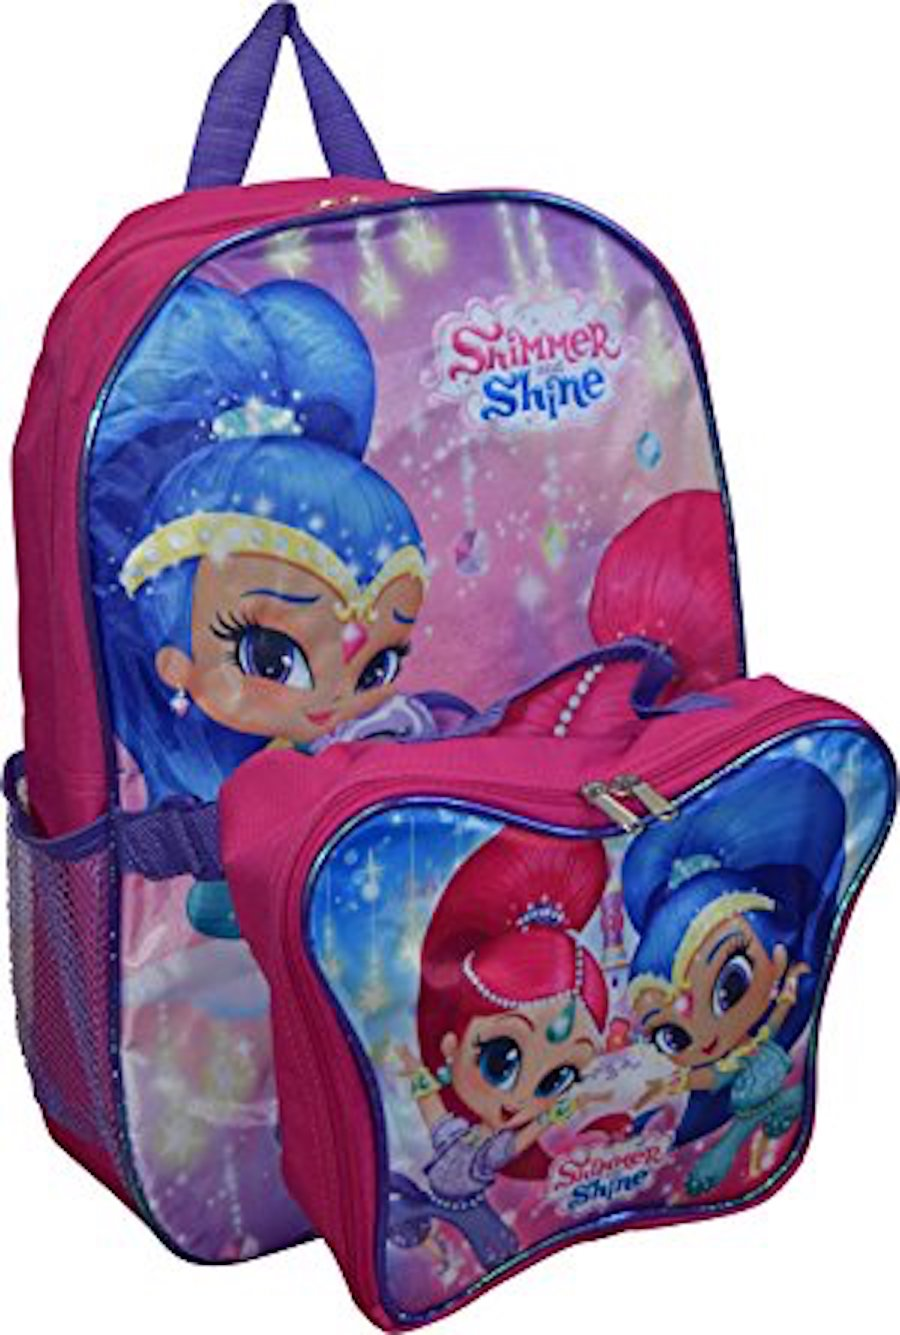 "Shimmer and Shine 16"" Backpack With Detachable Matching Lunch Box PLUS Hair Accessory Set - Multi-Value Bundle"